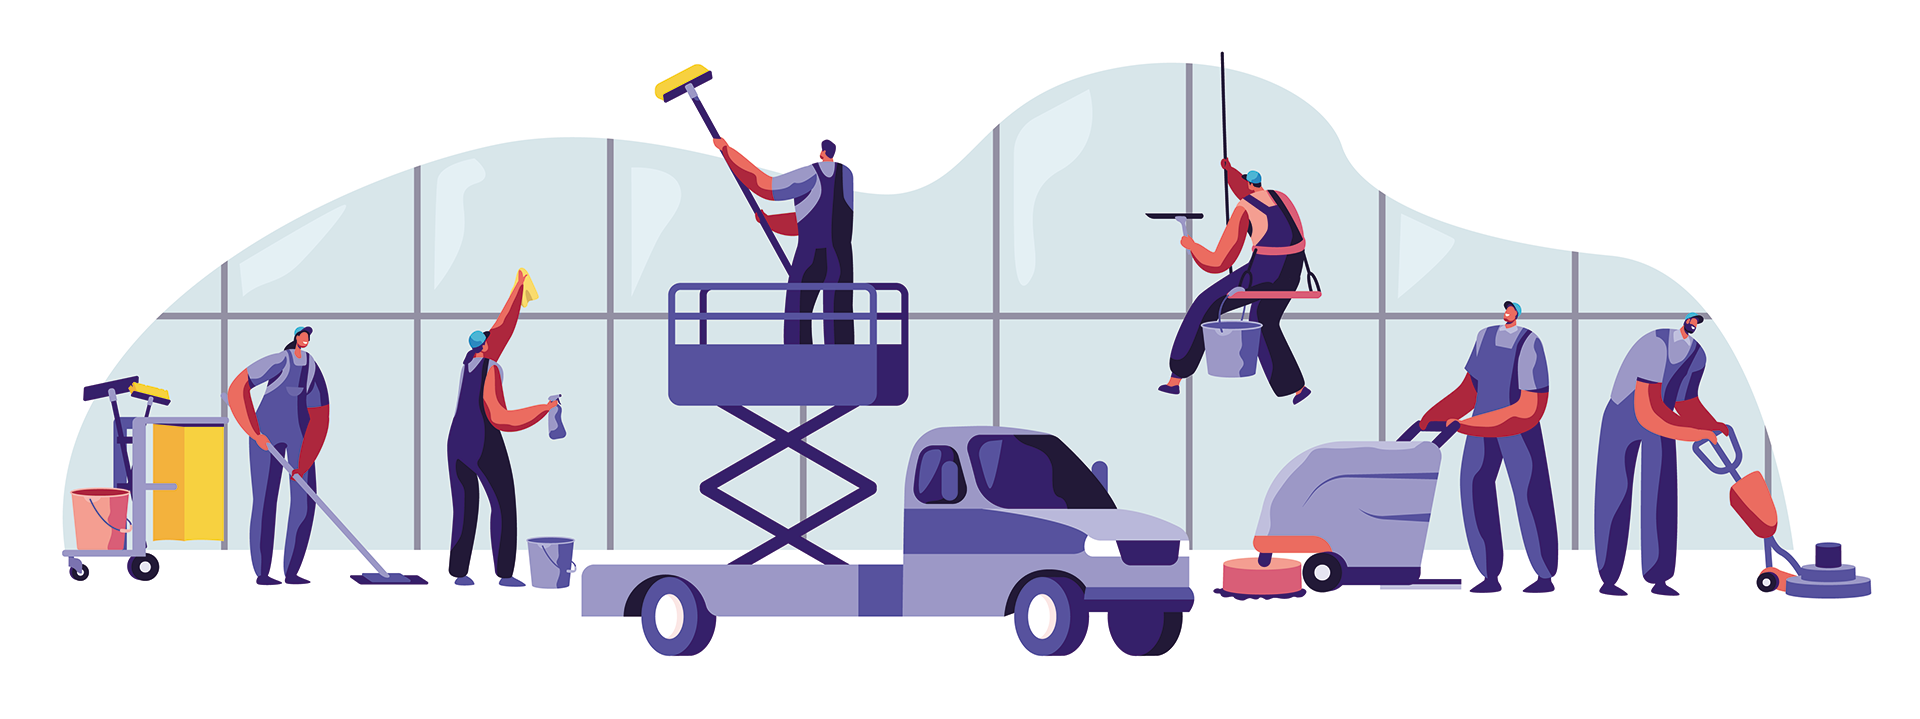 A drawing of several individuals cleaning with vehicles and cleaning equipment